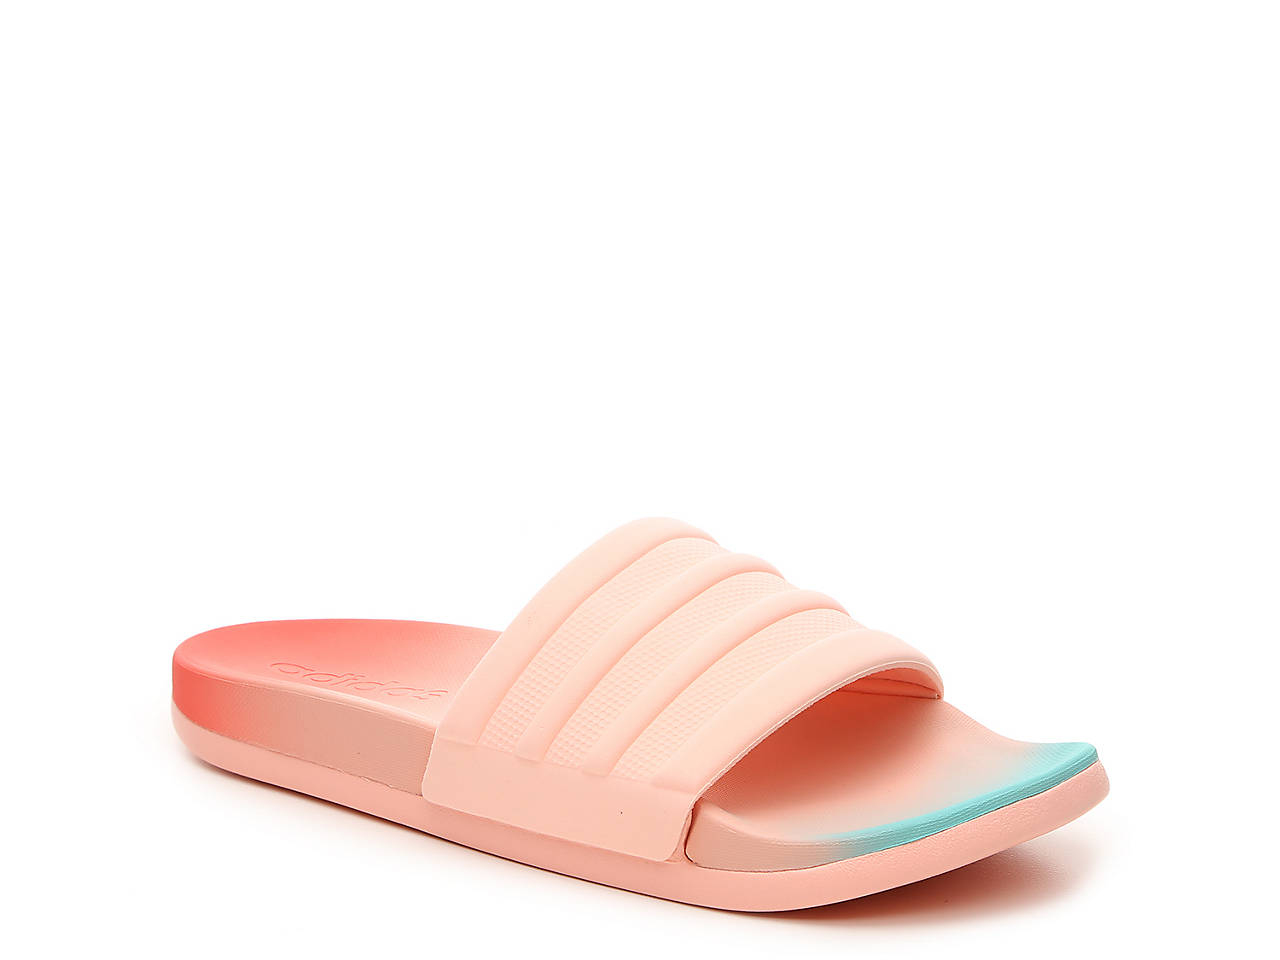 dc289fd48 adidas Adilette Cloudfoam Fade Slide Sandal Women s Shoes